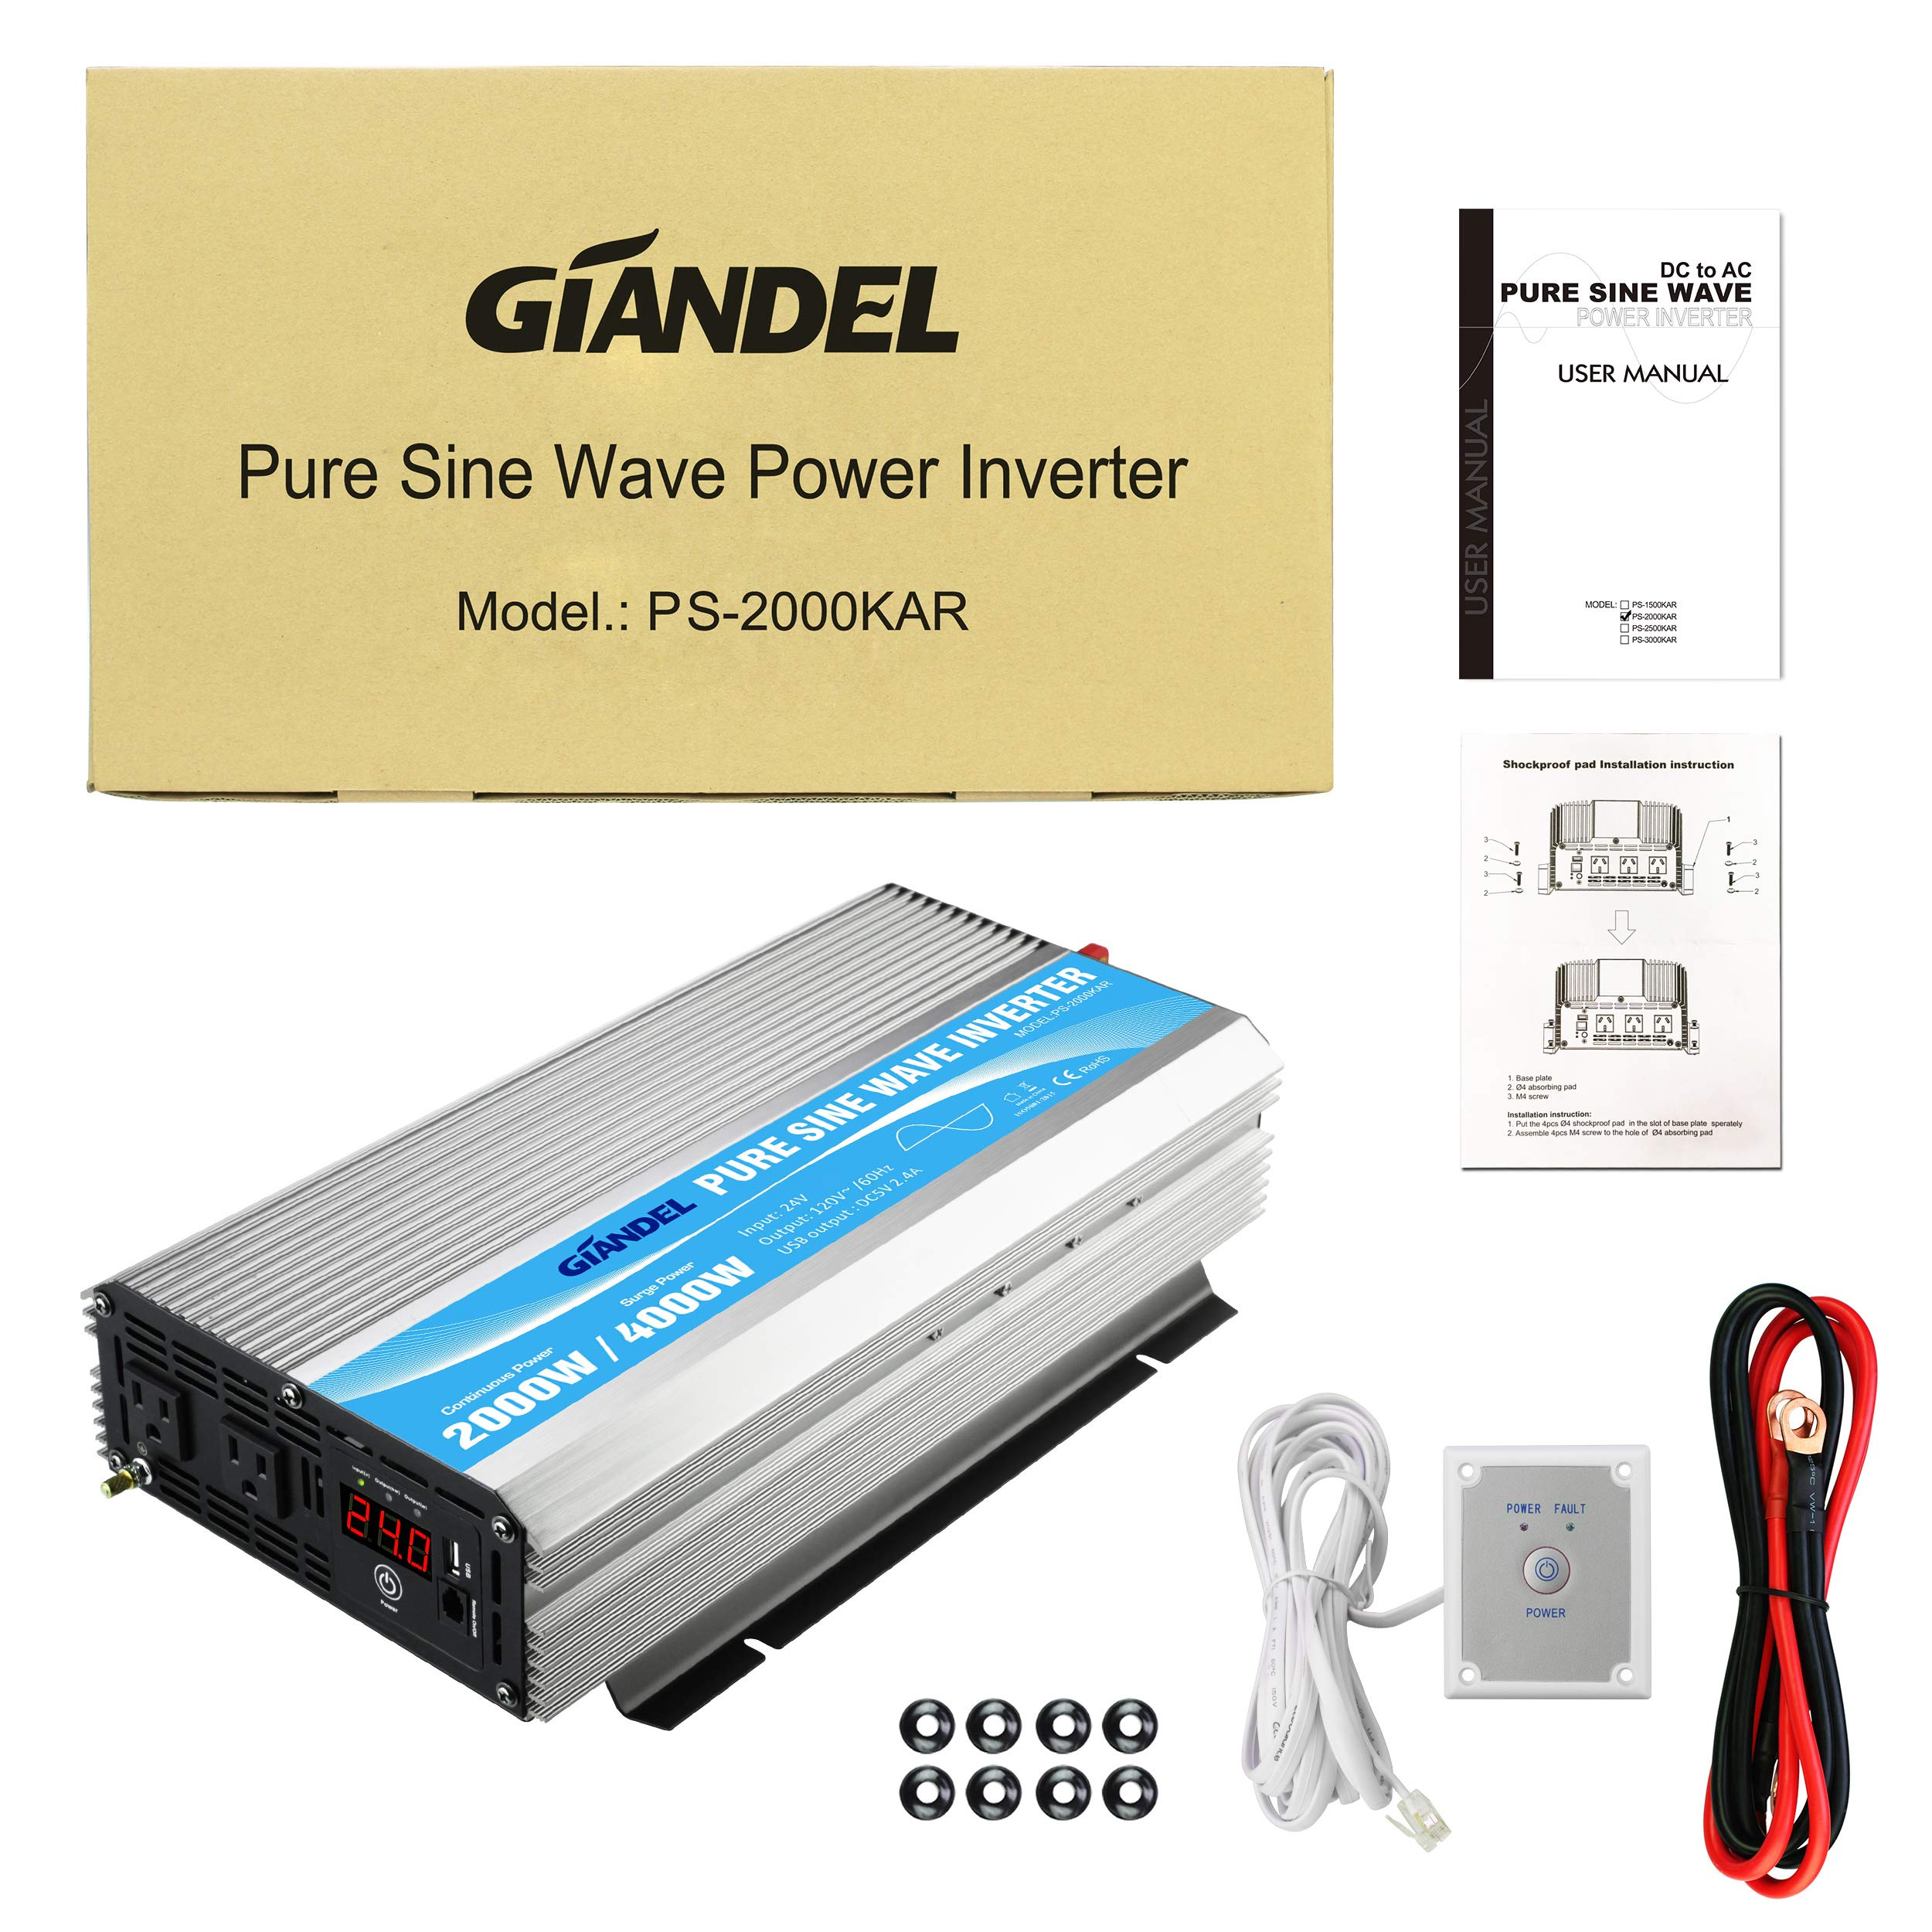 Giandel 2000W Pure Sine Wave Power Inverter DC 24V to AC120V with Dual AC Outlets with Remote Control 2.4A USB and LED Display by Giandel (Image #7)